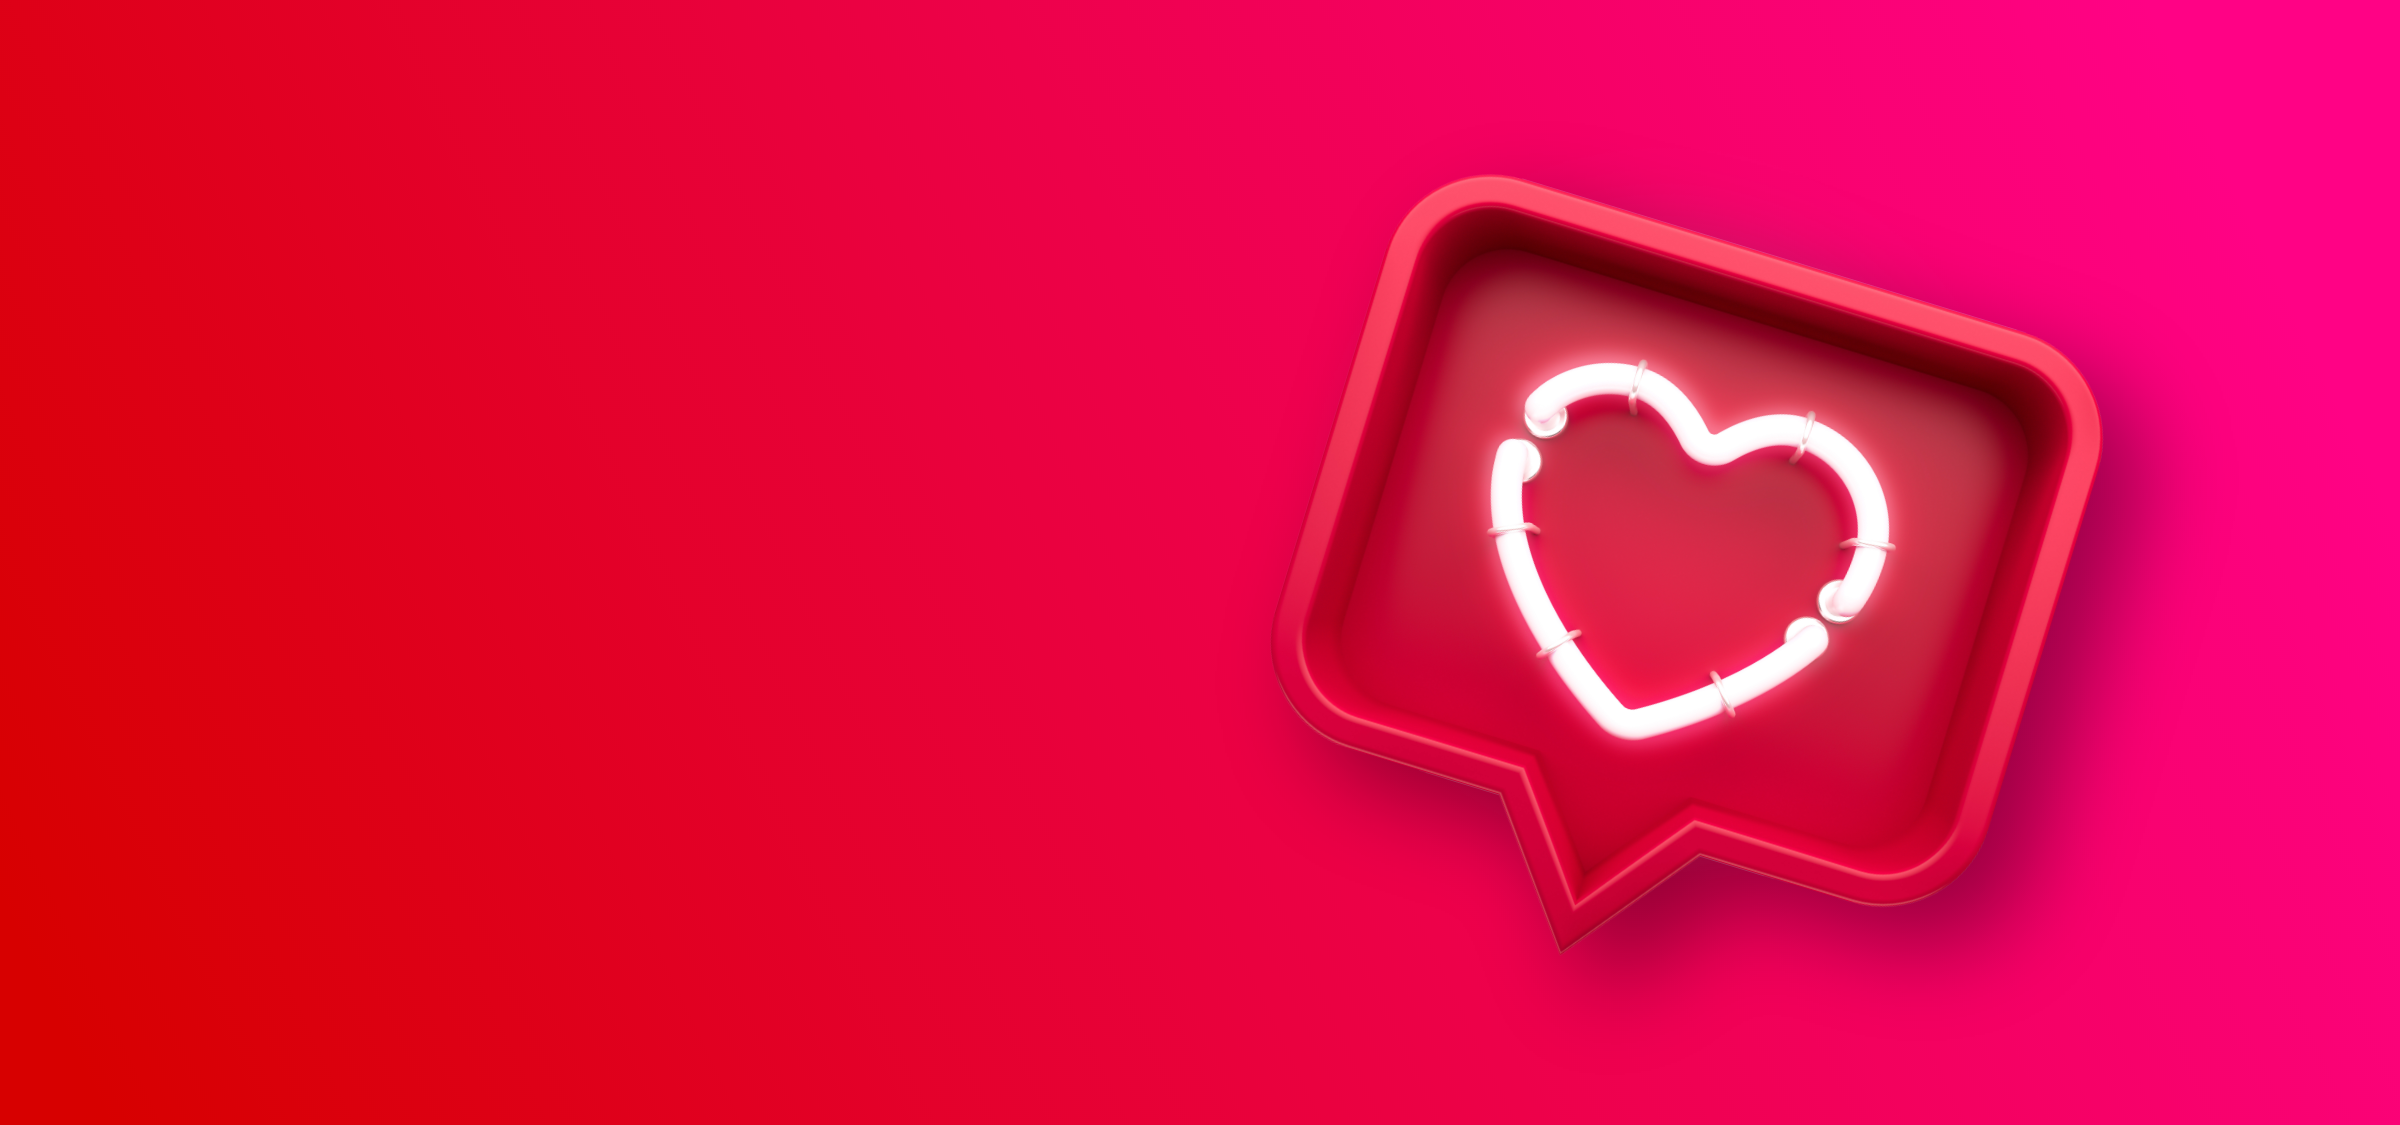 Share the love with your customers this valentine's day